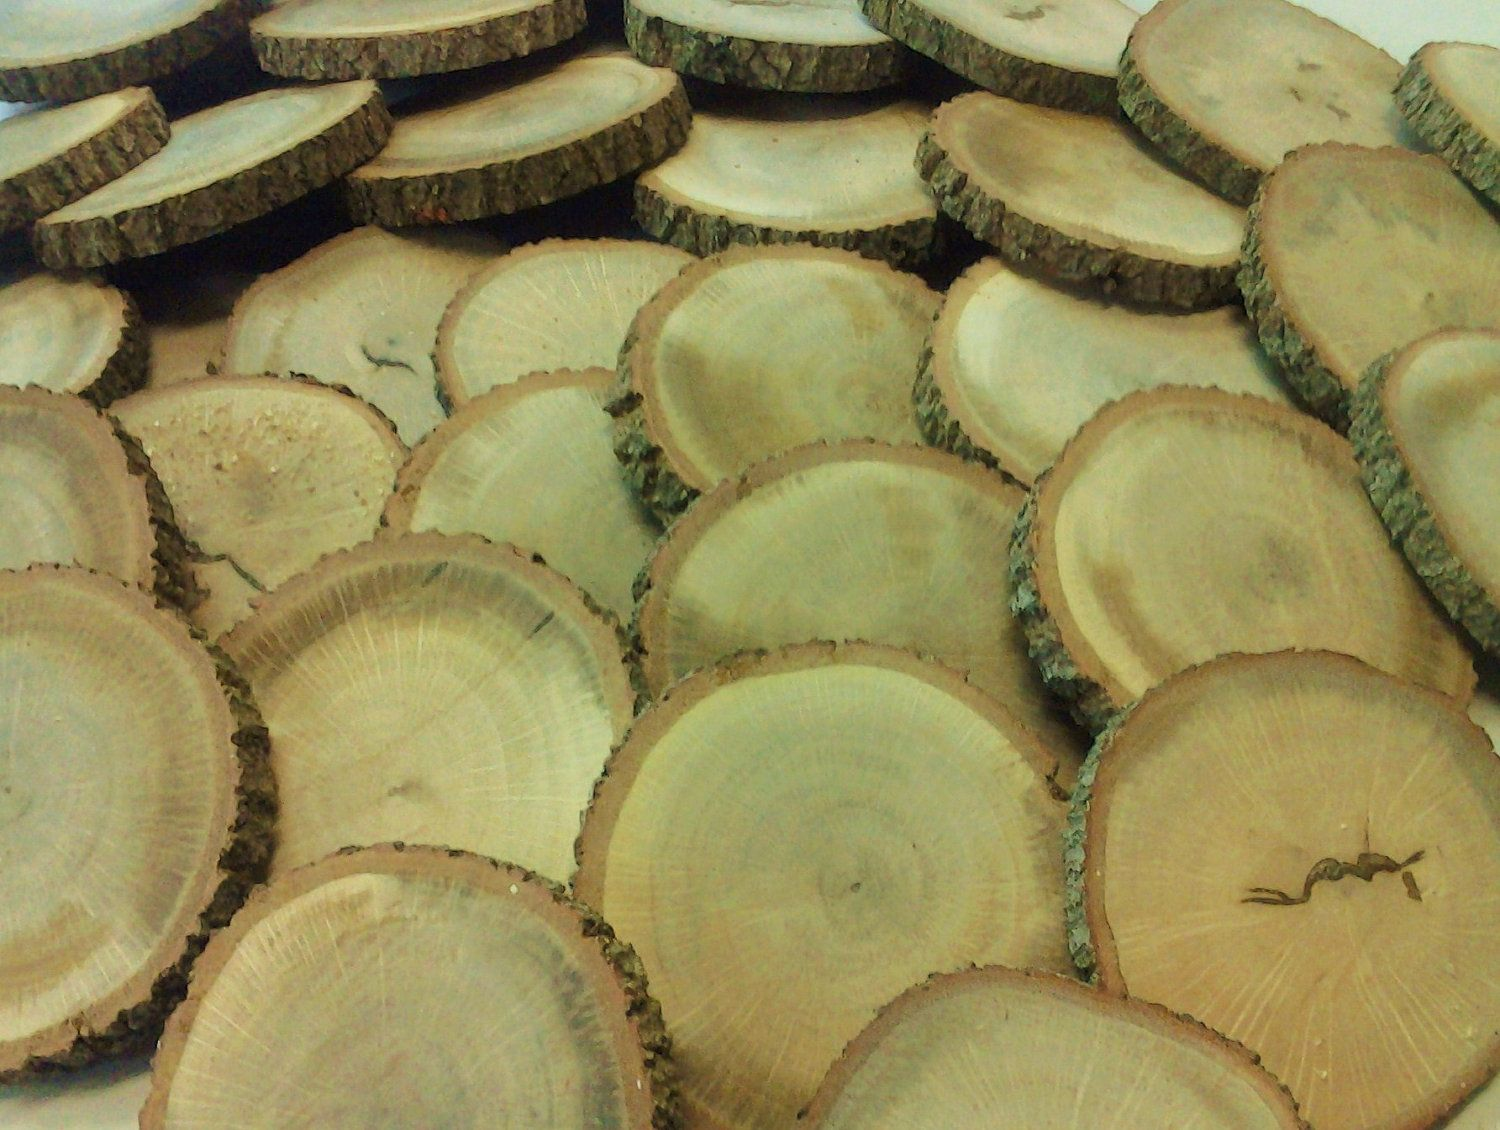 Large set of natural oak tree discs for crafts diy projects